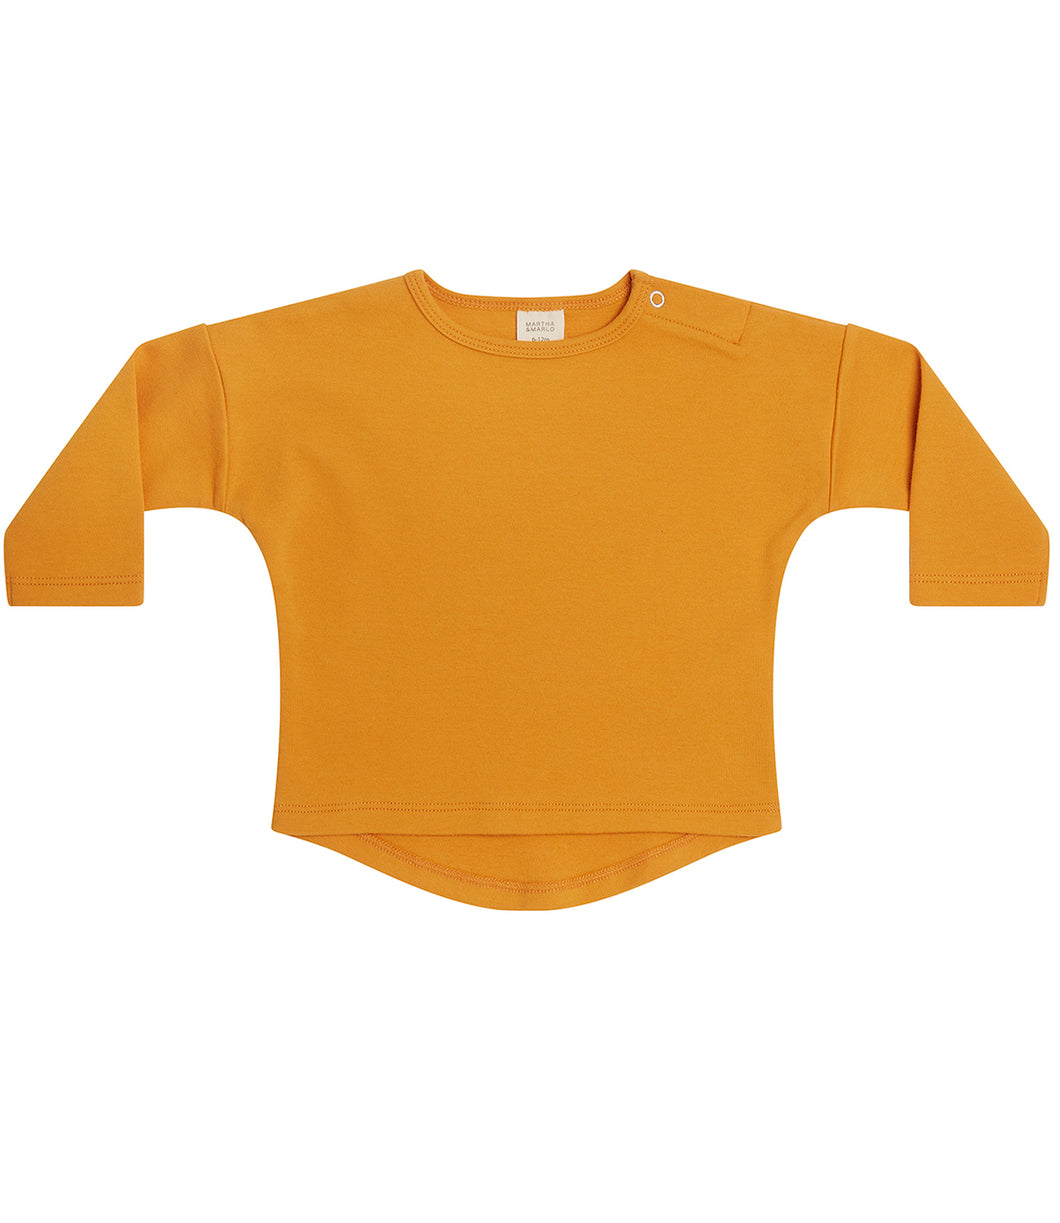 Martha & Marlo Kids Long Sleeve T-Shirt Organic Cotton Mustard